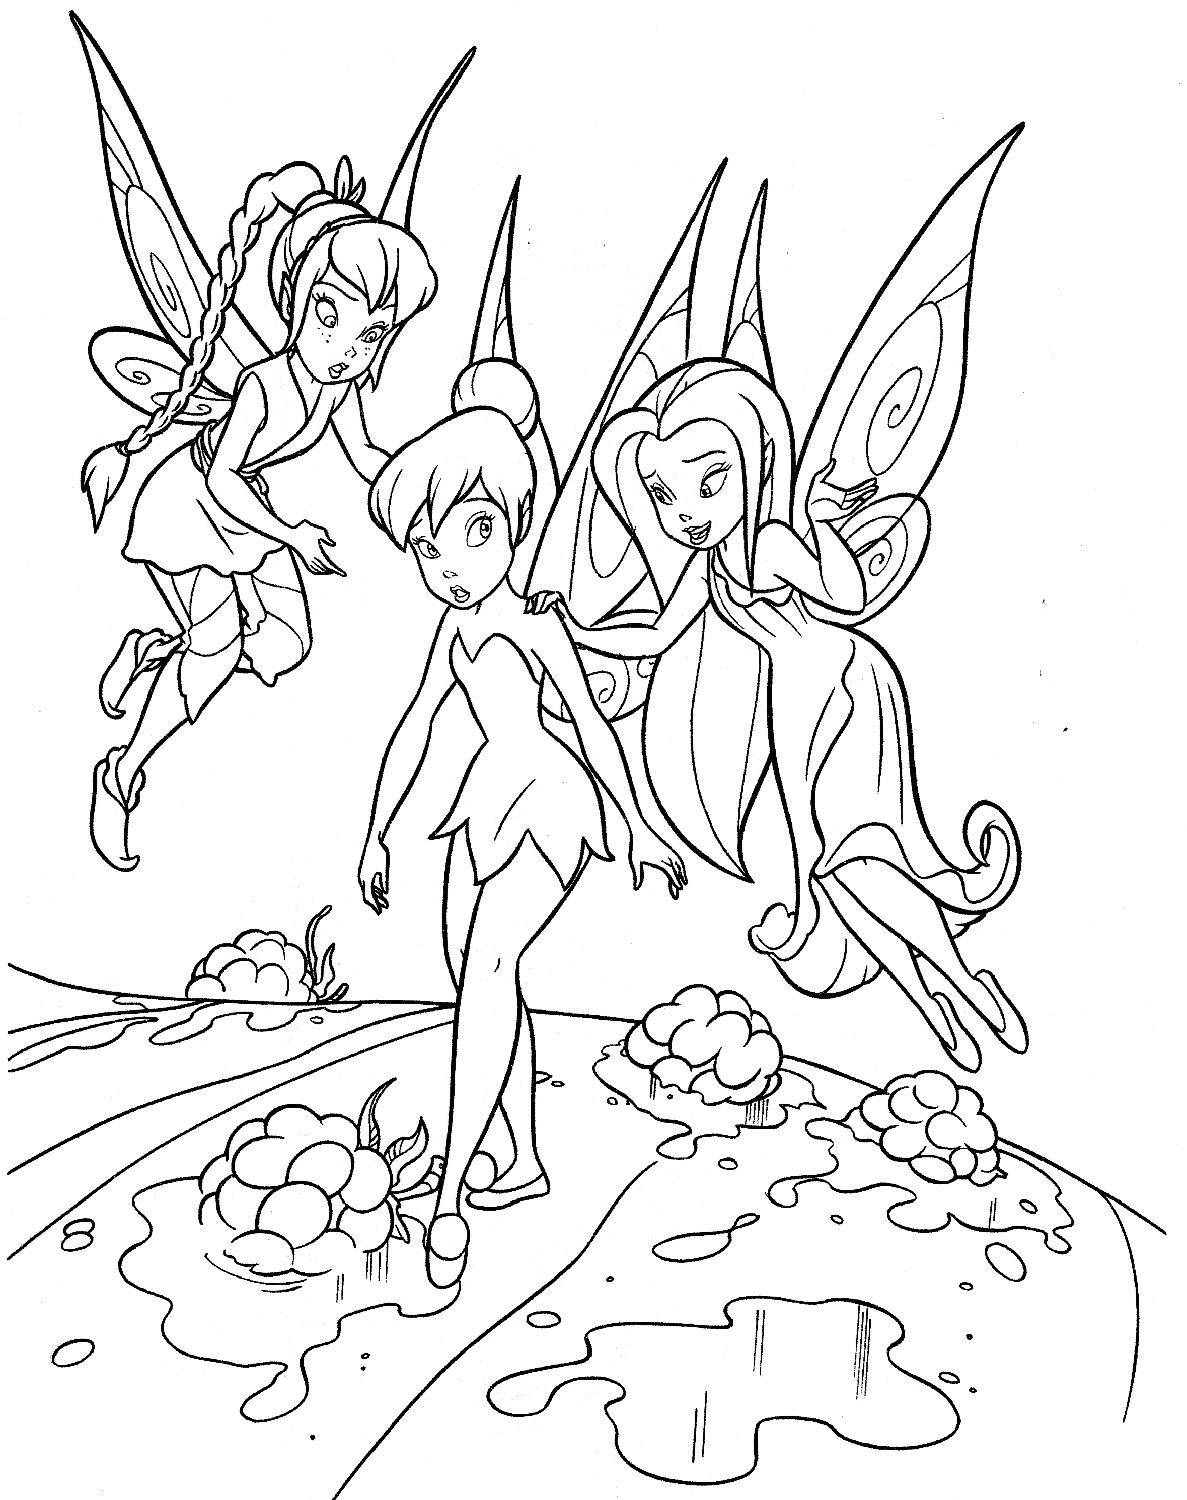 Tinkerbell Coloring | Coloring | Pinterest | Tinkerbell, Coloring ...